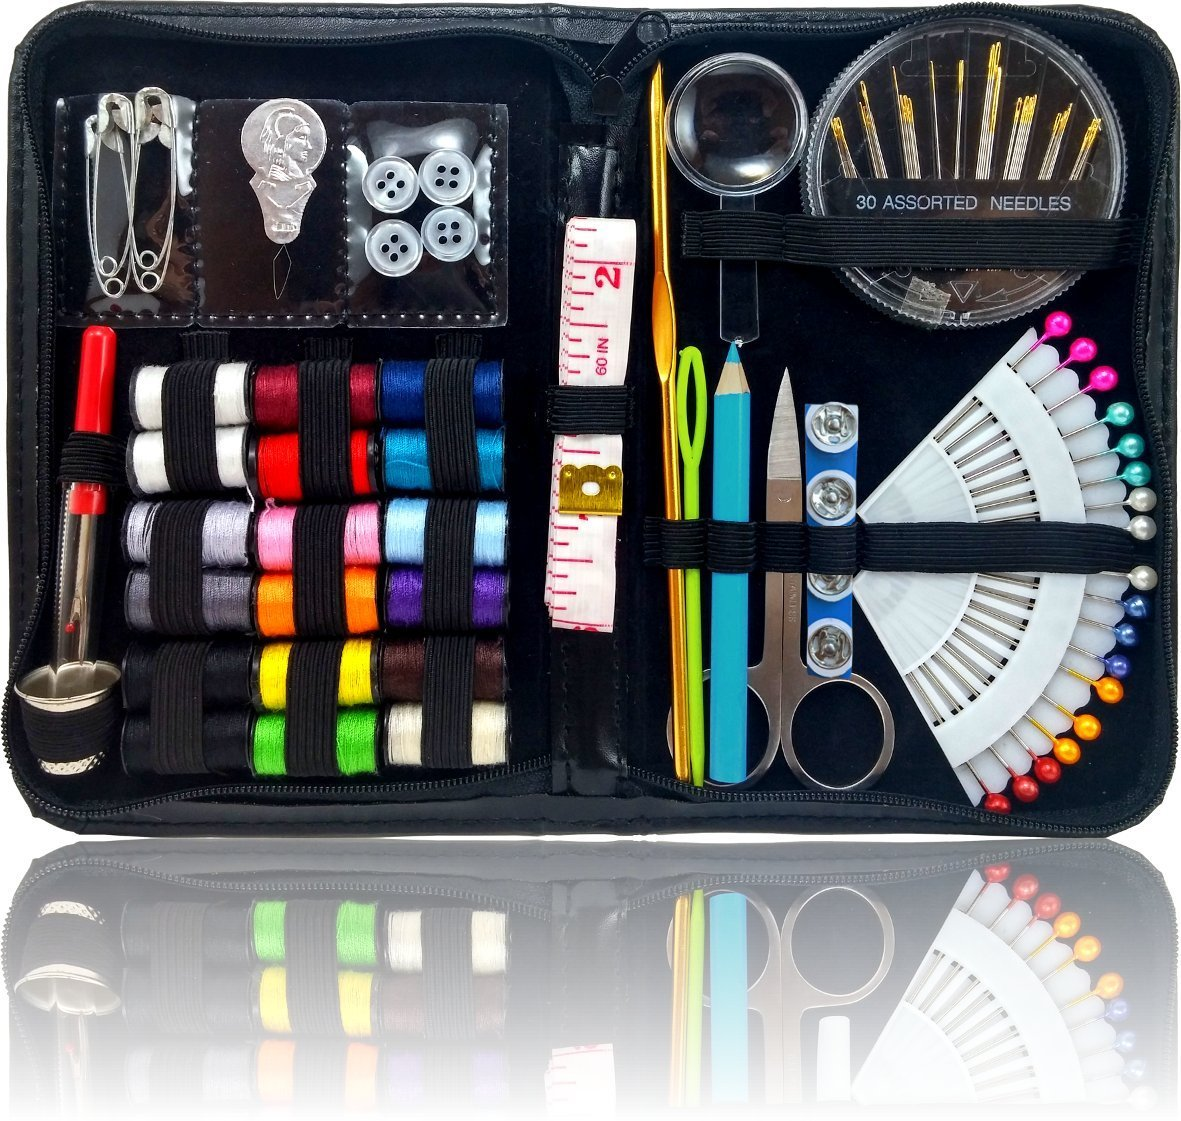 12 Tool Kits that are Guaranteed to Make Your Life Easier | www.onecrazyhouse.com